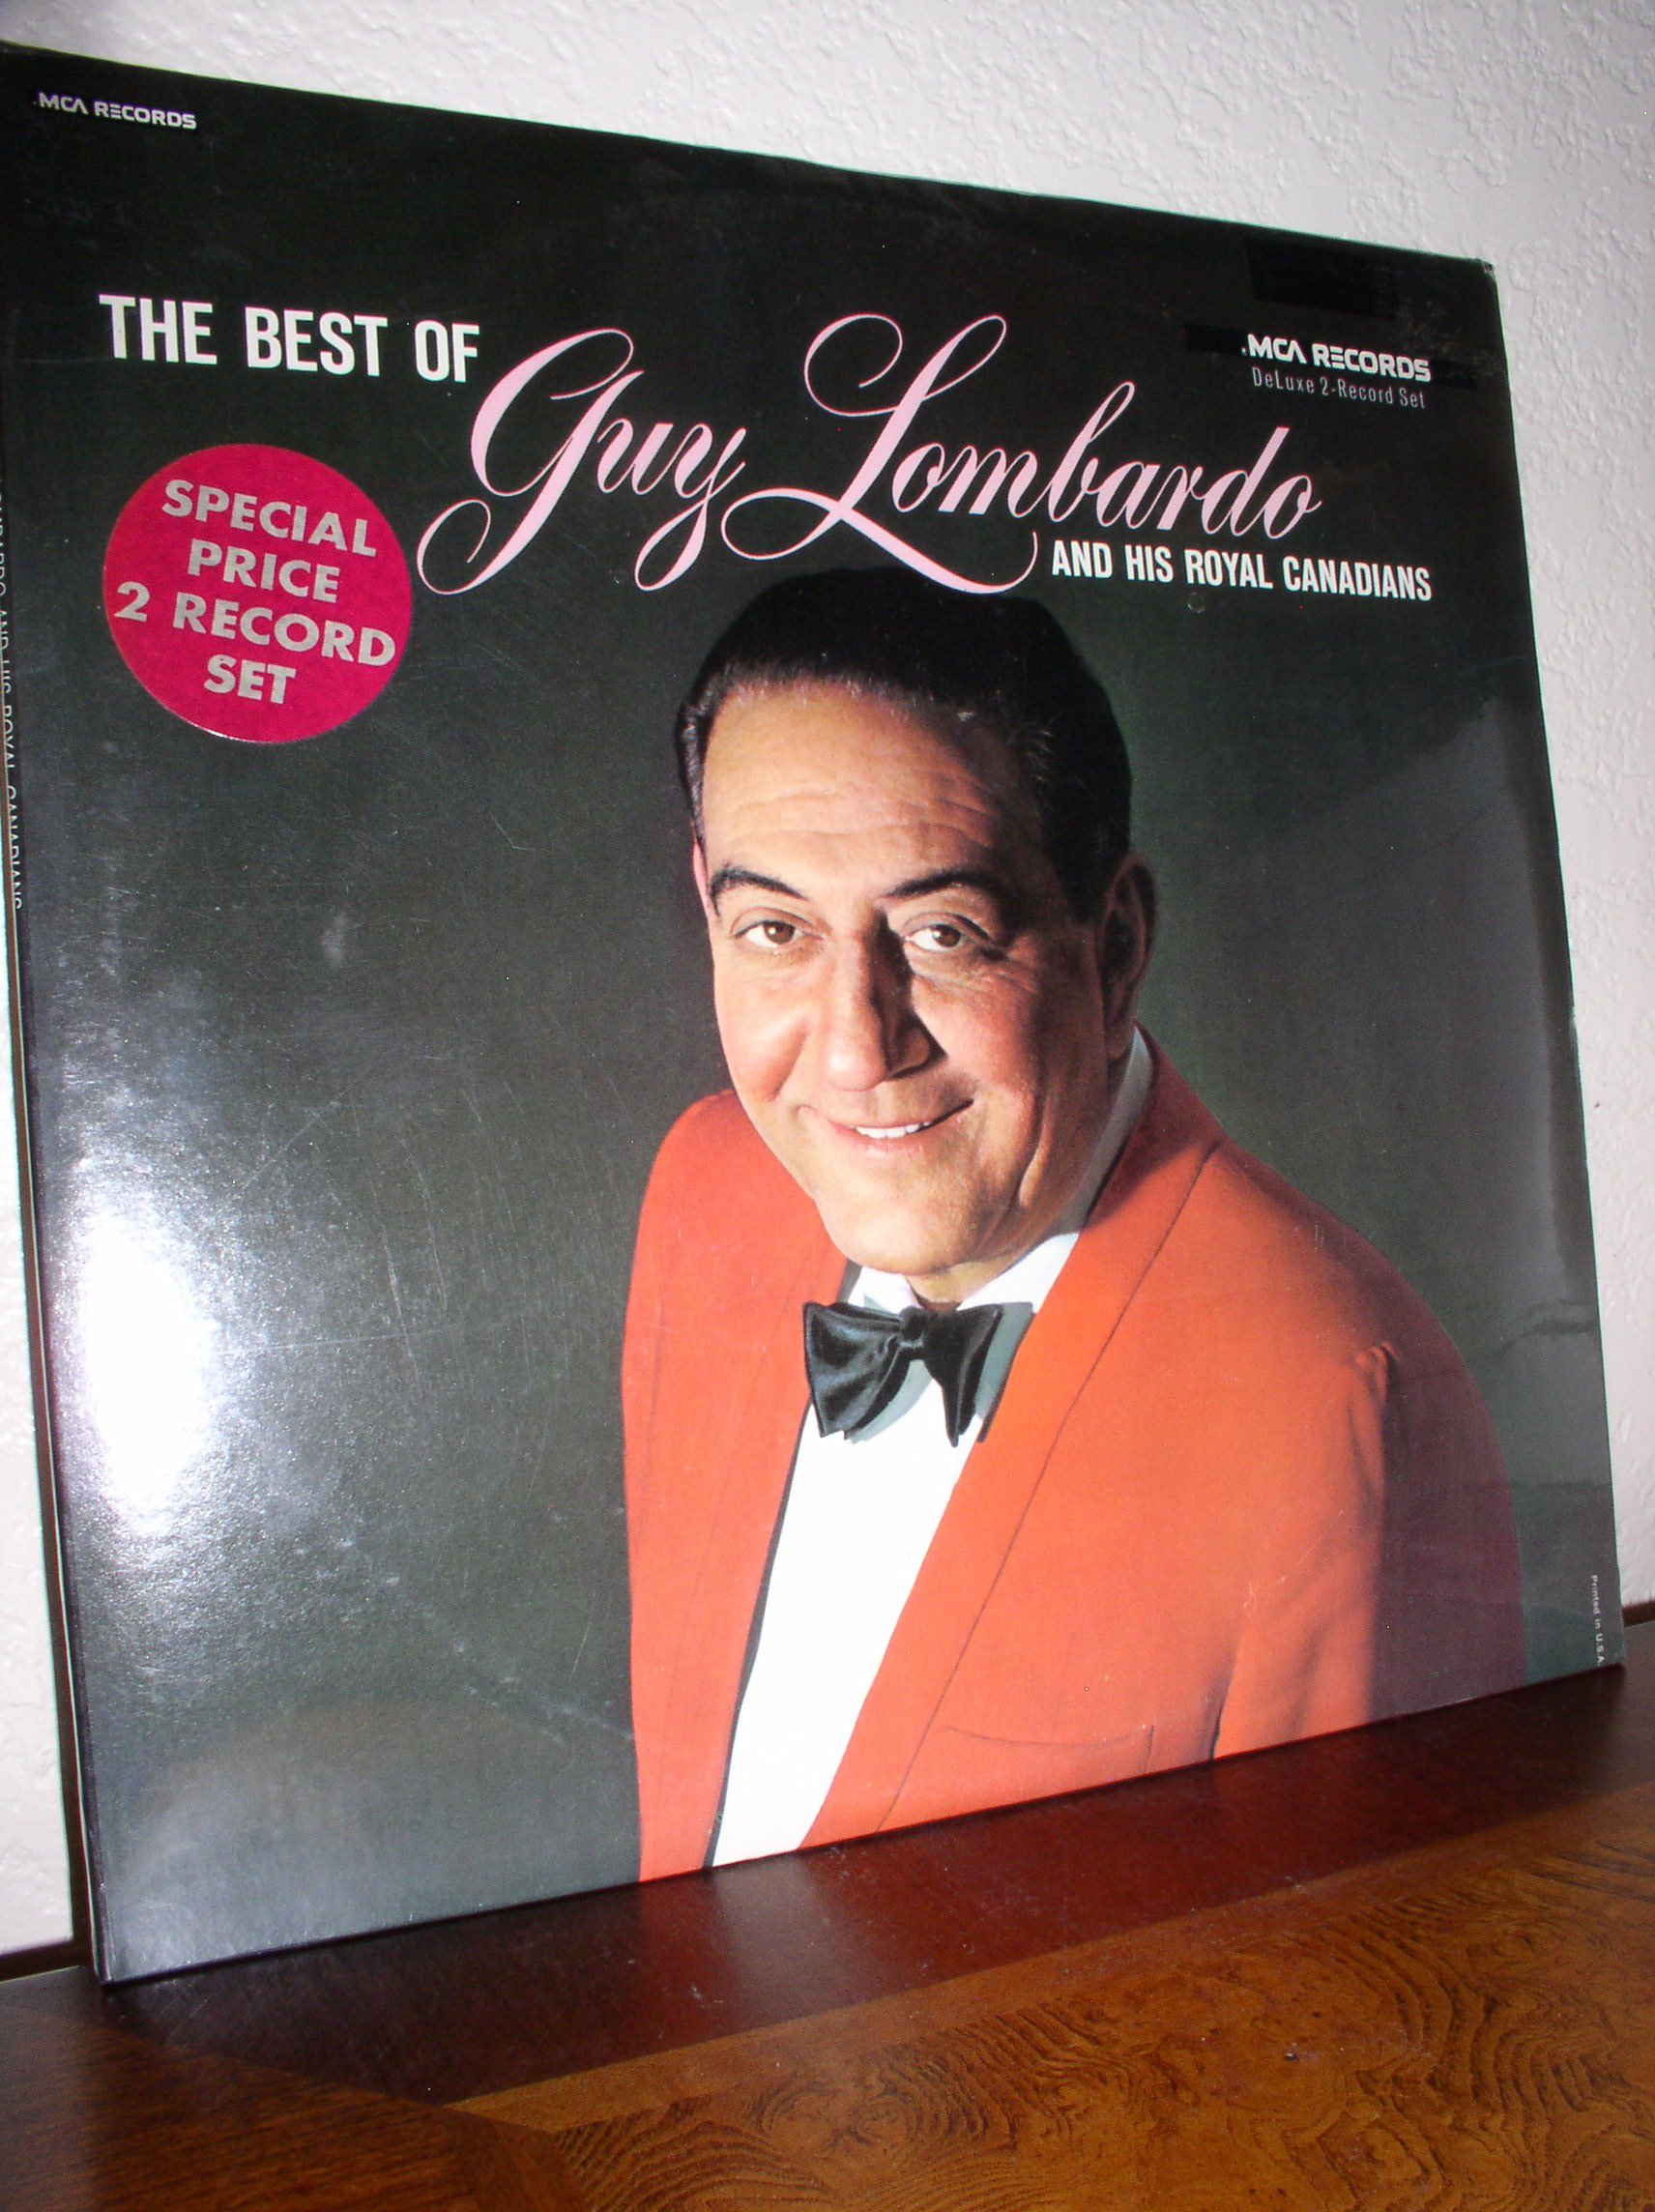 The Best of Guy Lombardo And His Royal Canadians (Vol. 1) (MCA Records) (Fold-Open Gatefold Cover) [2 VINYL LP SET] [STEREO]